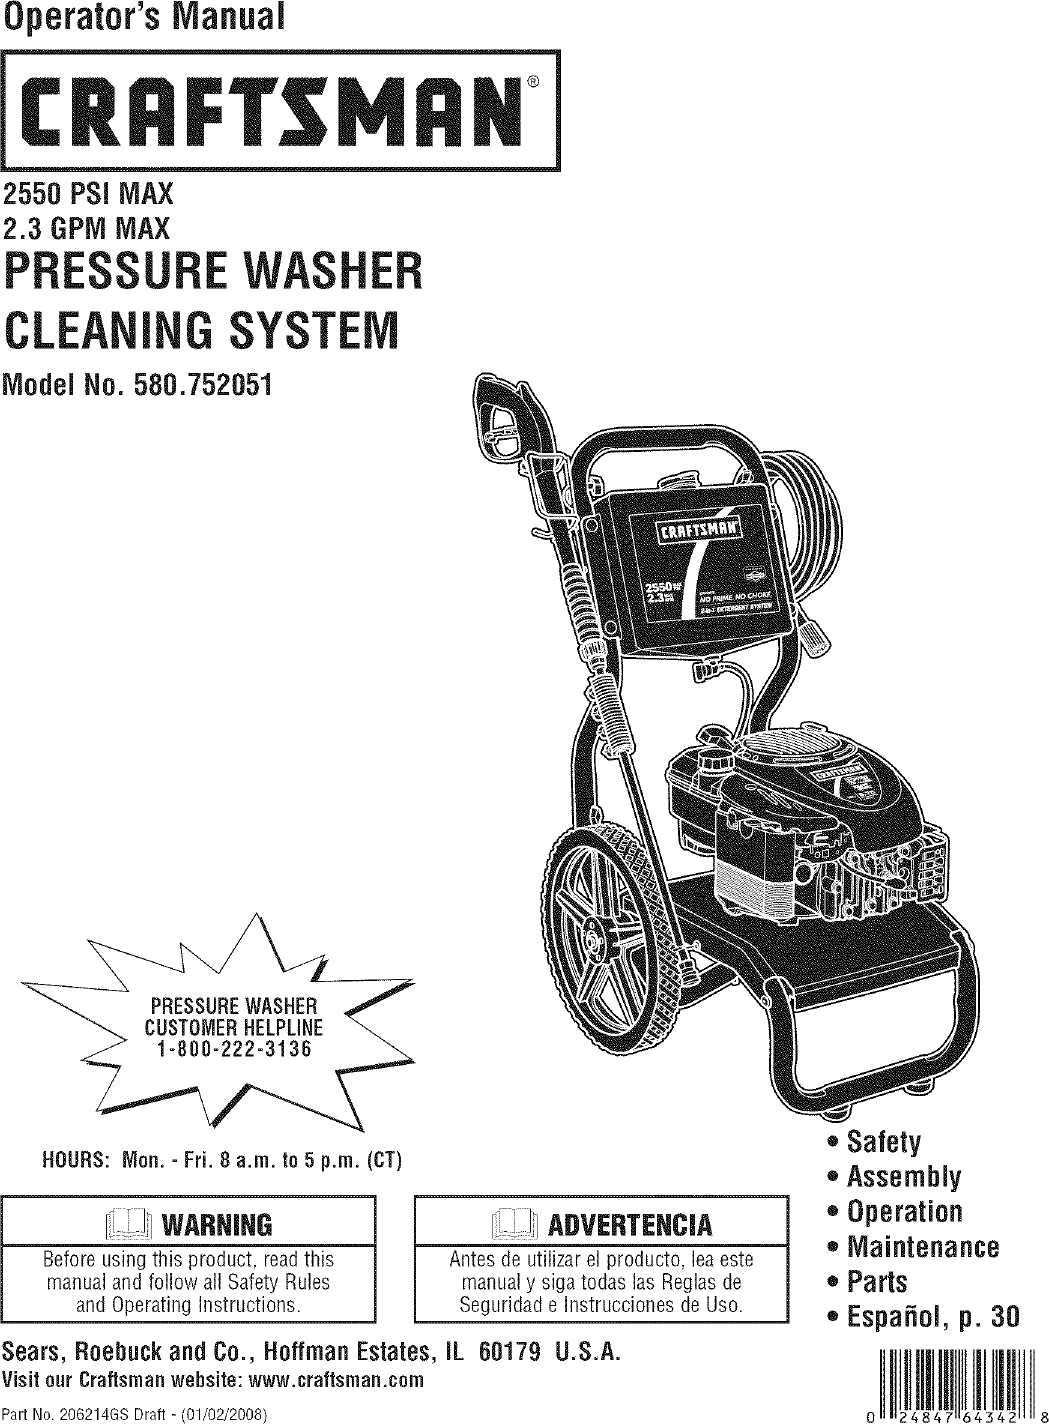 Craftsman 580752051 User Manual PRESSURE WASHER Manuals